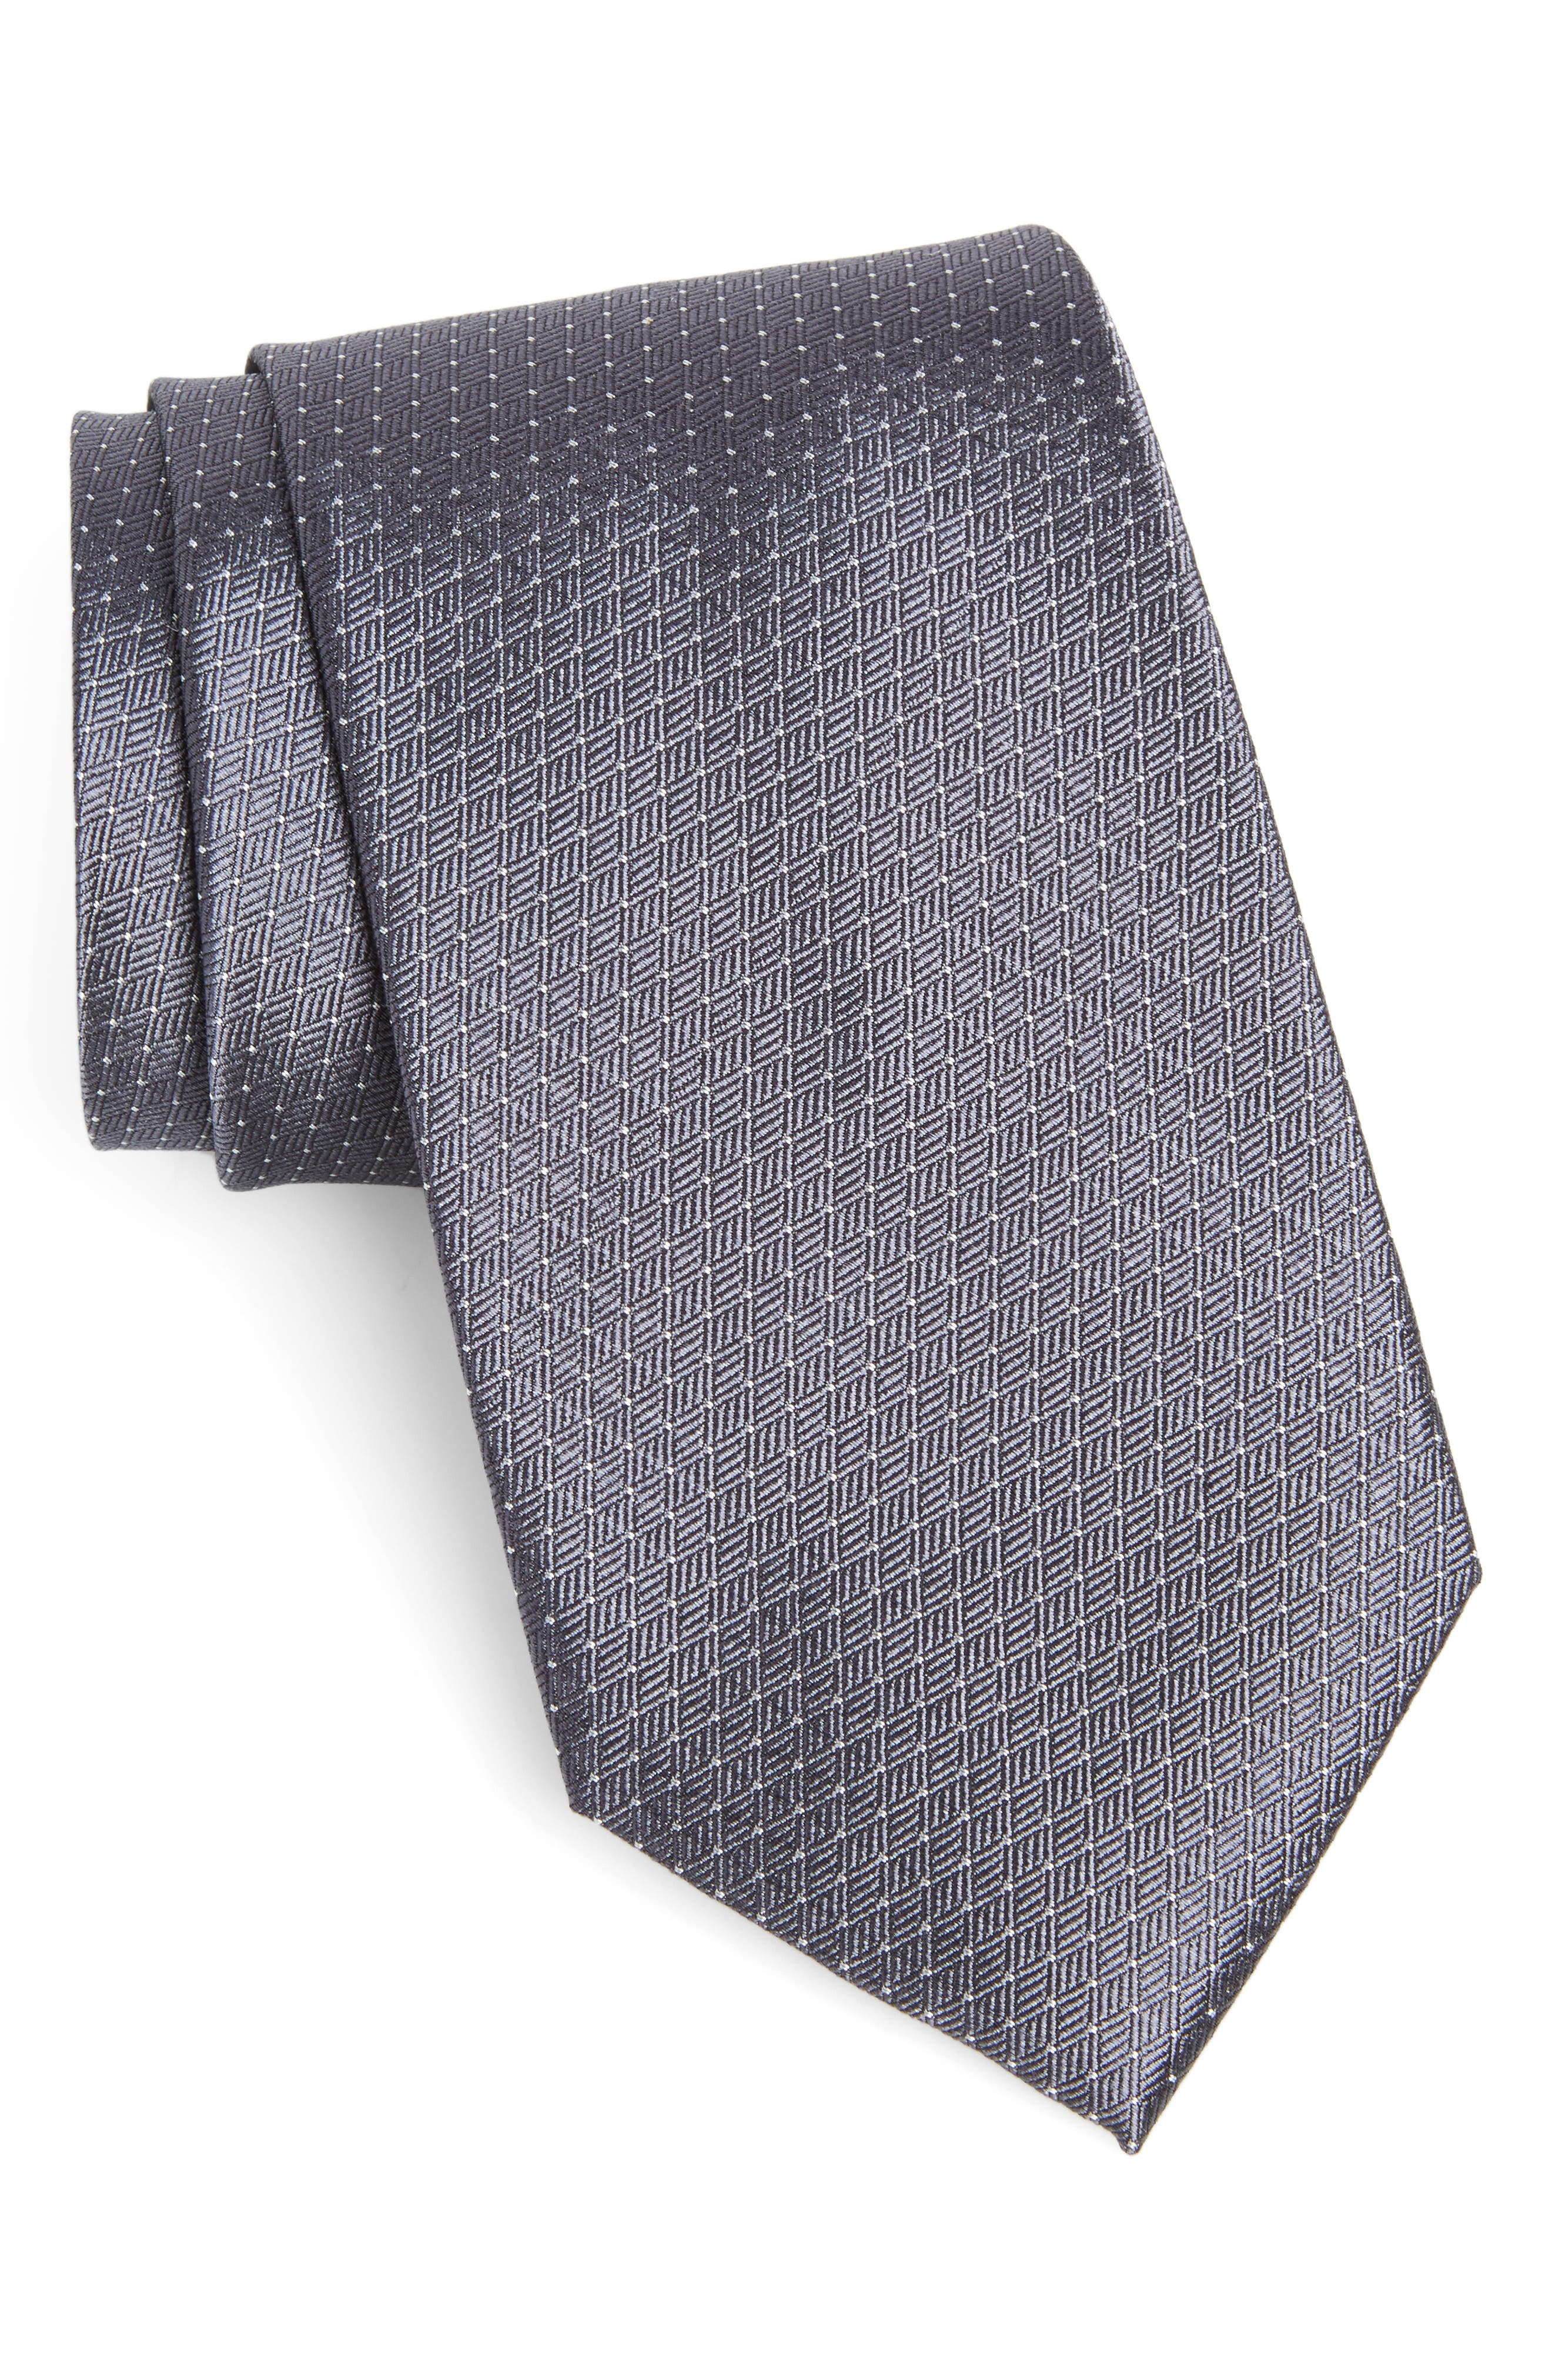 Alternate Image 1 Selected - Nordstrom Men's Shop Dot Silk Tie (X-Long)